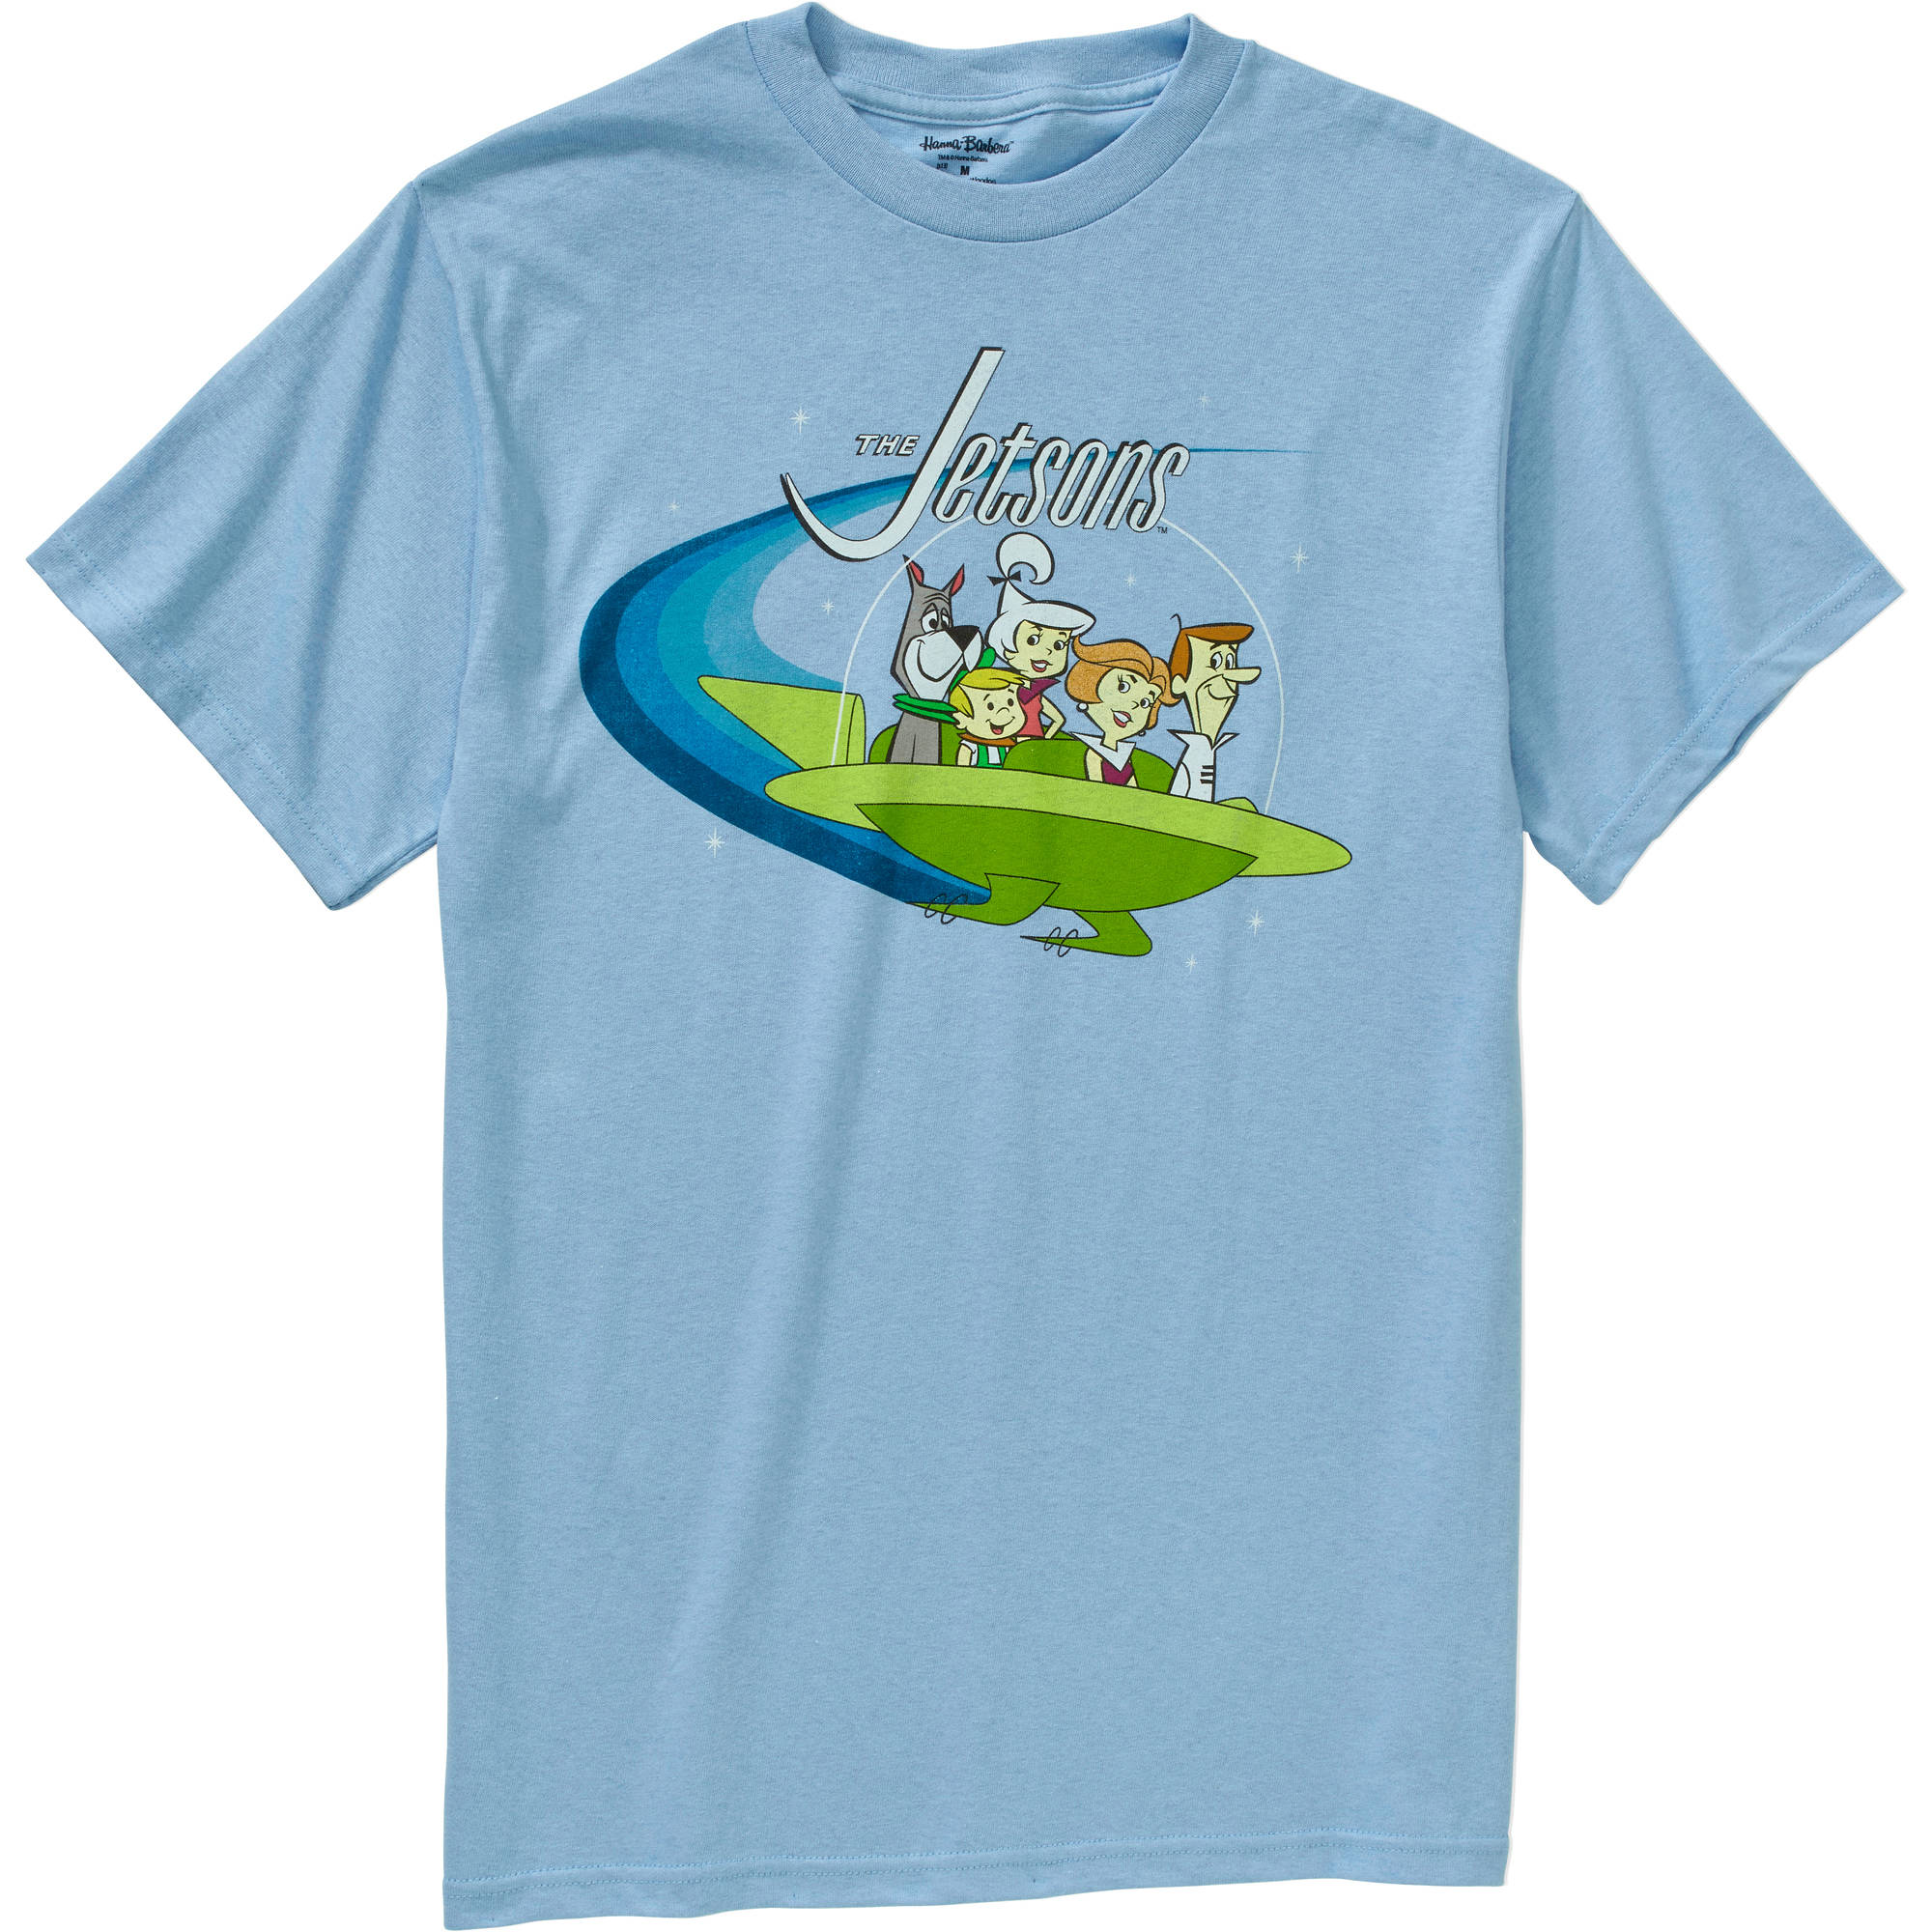 Jetsons Big Men's Big Vintage Short Sleeve T-Shirt, 2XL